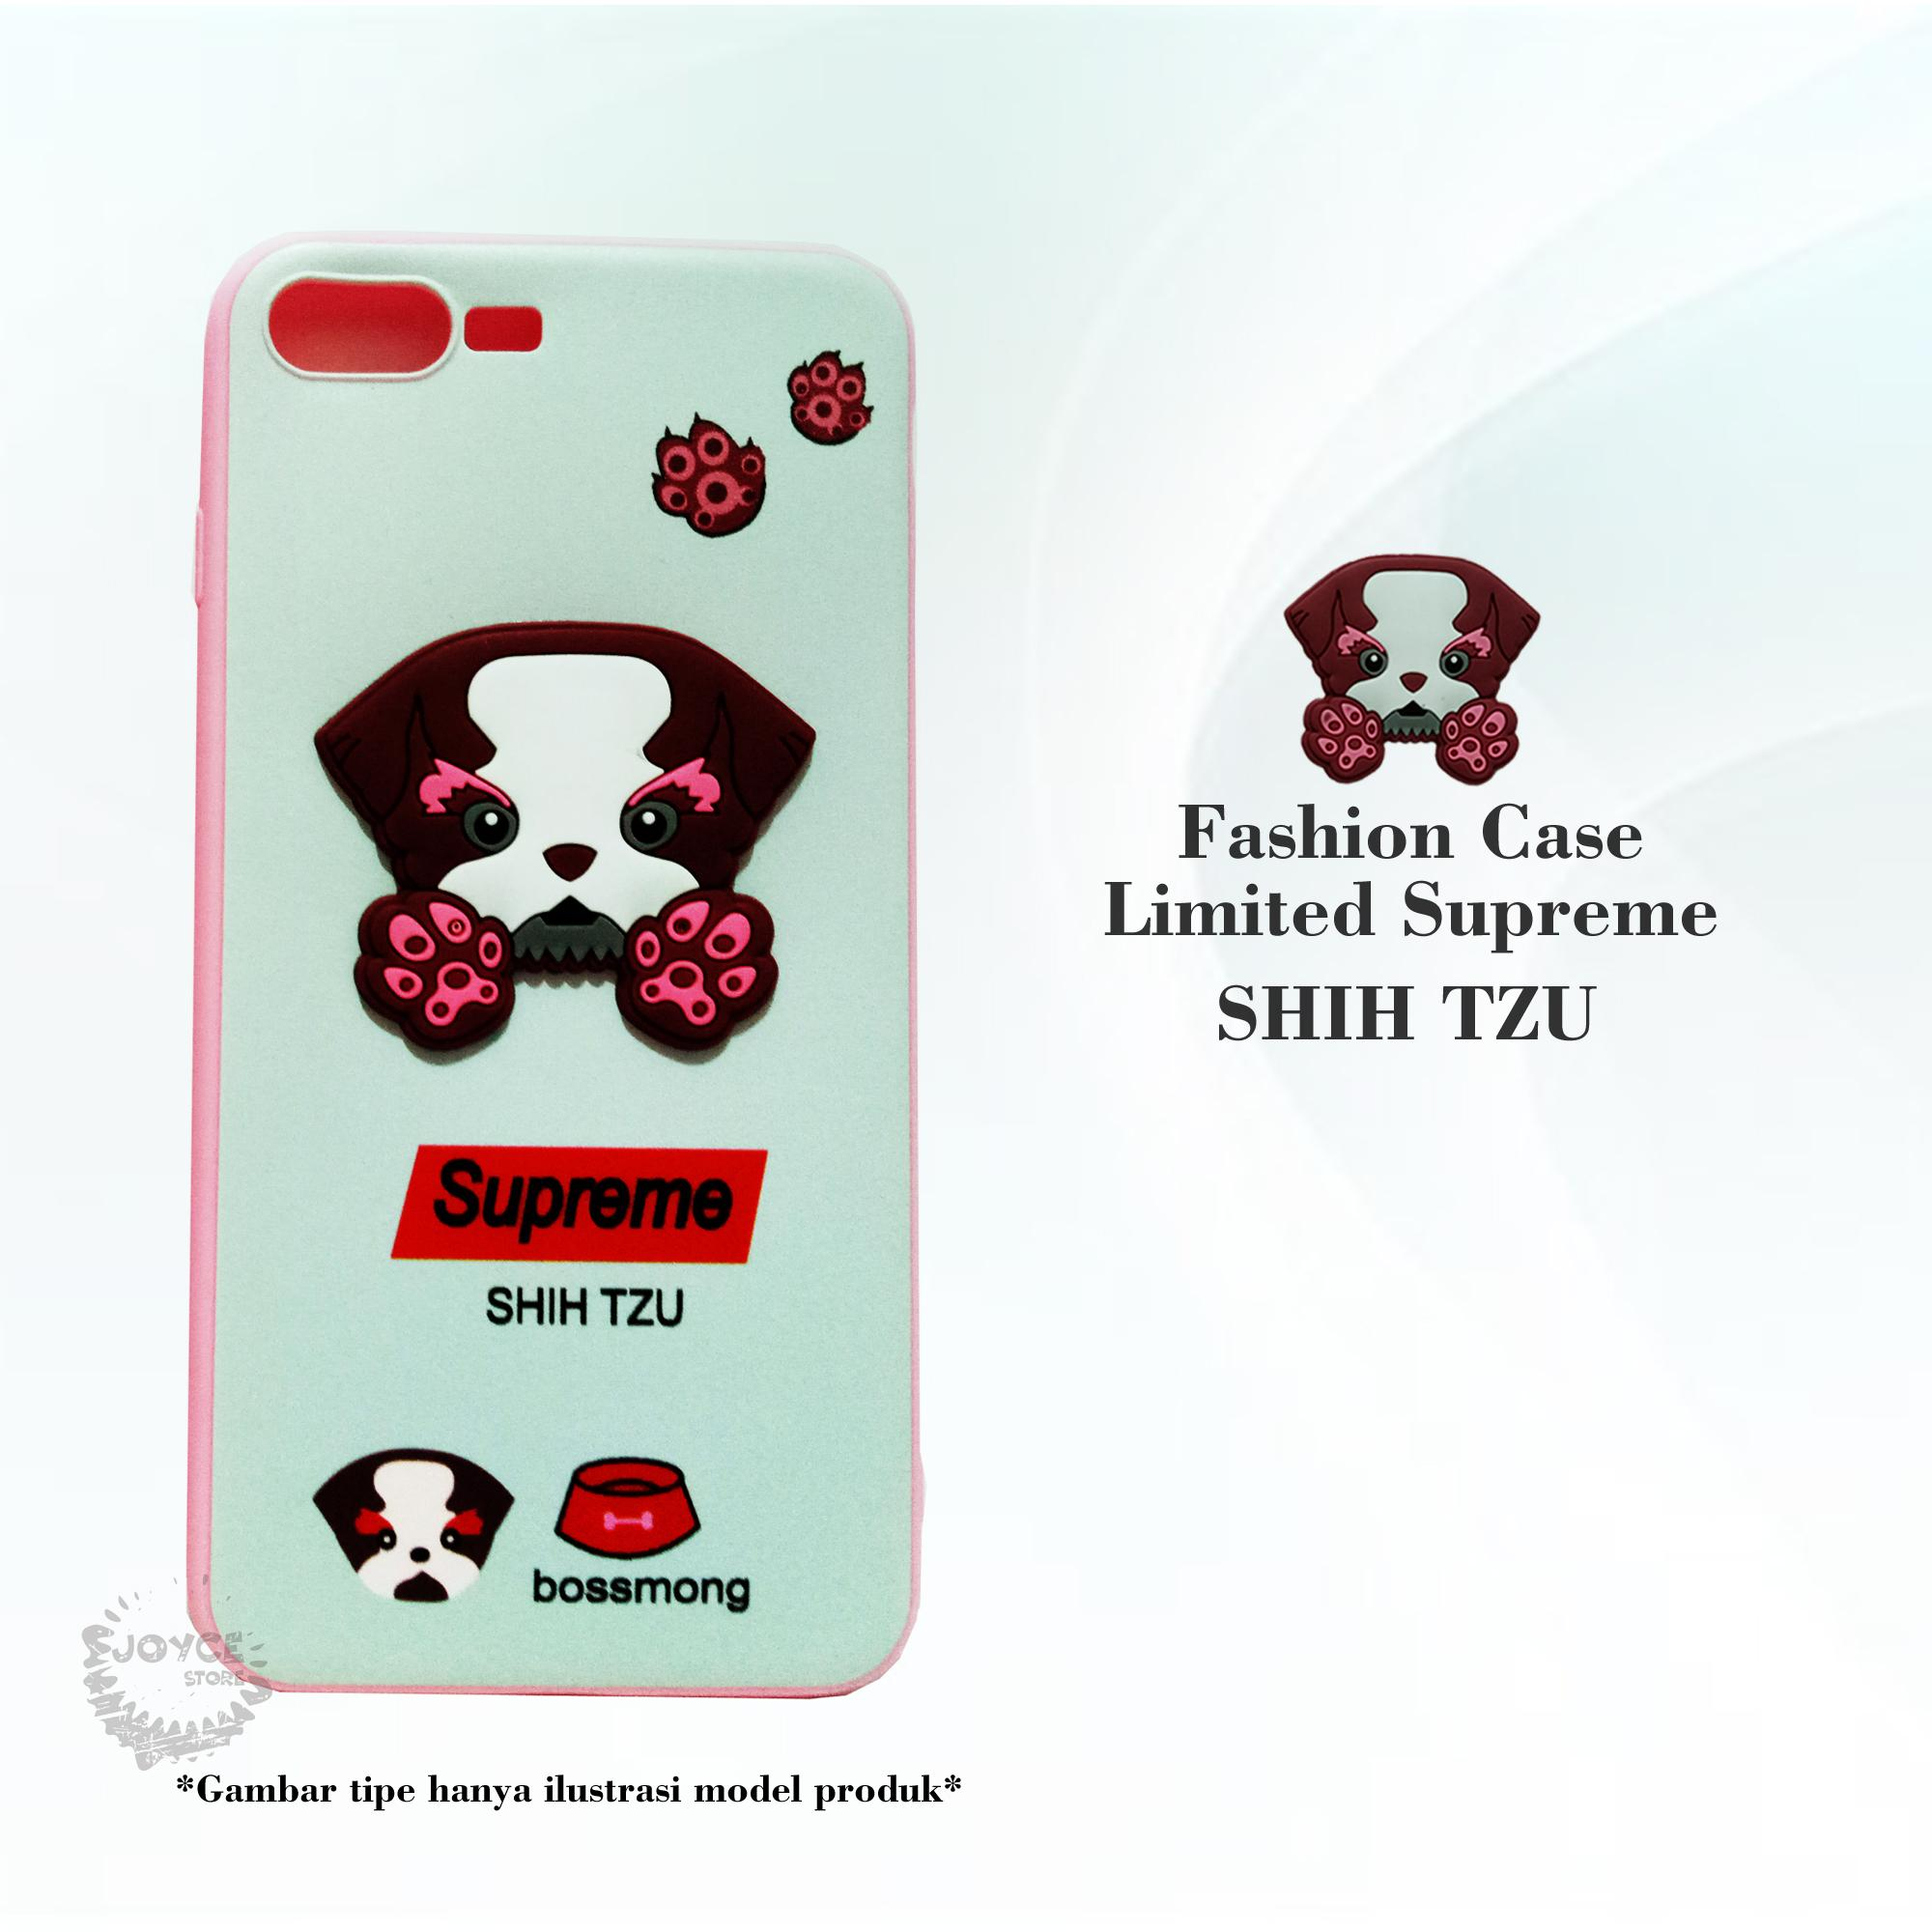 Joyce Fashion Case for Iphone 7 Plus Limited Supreme